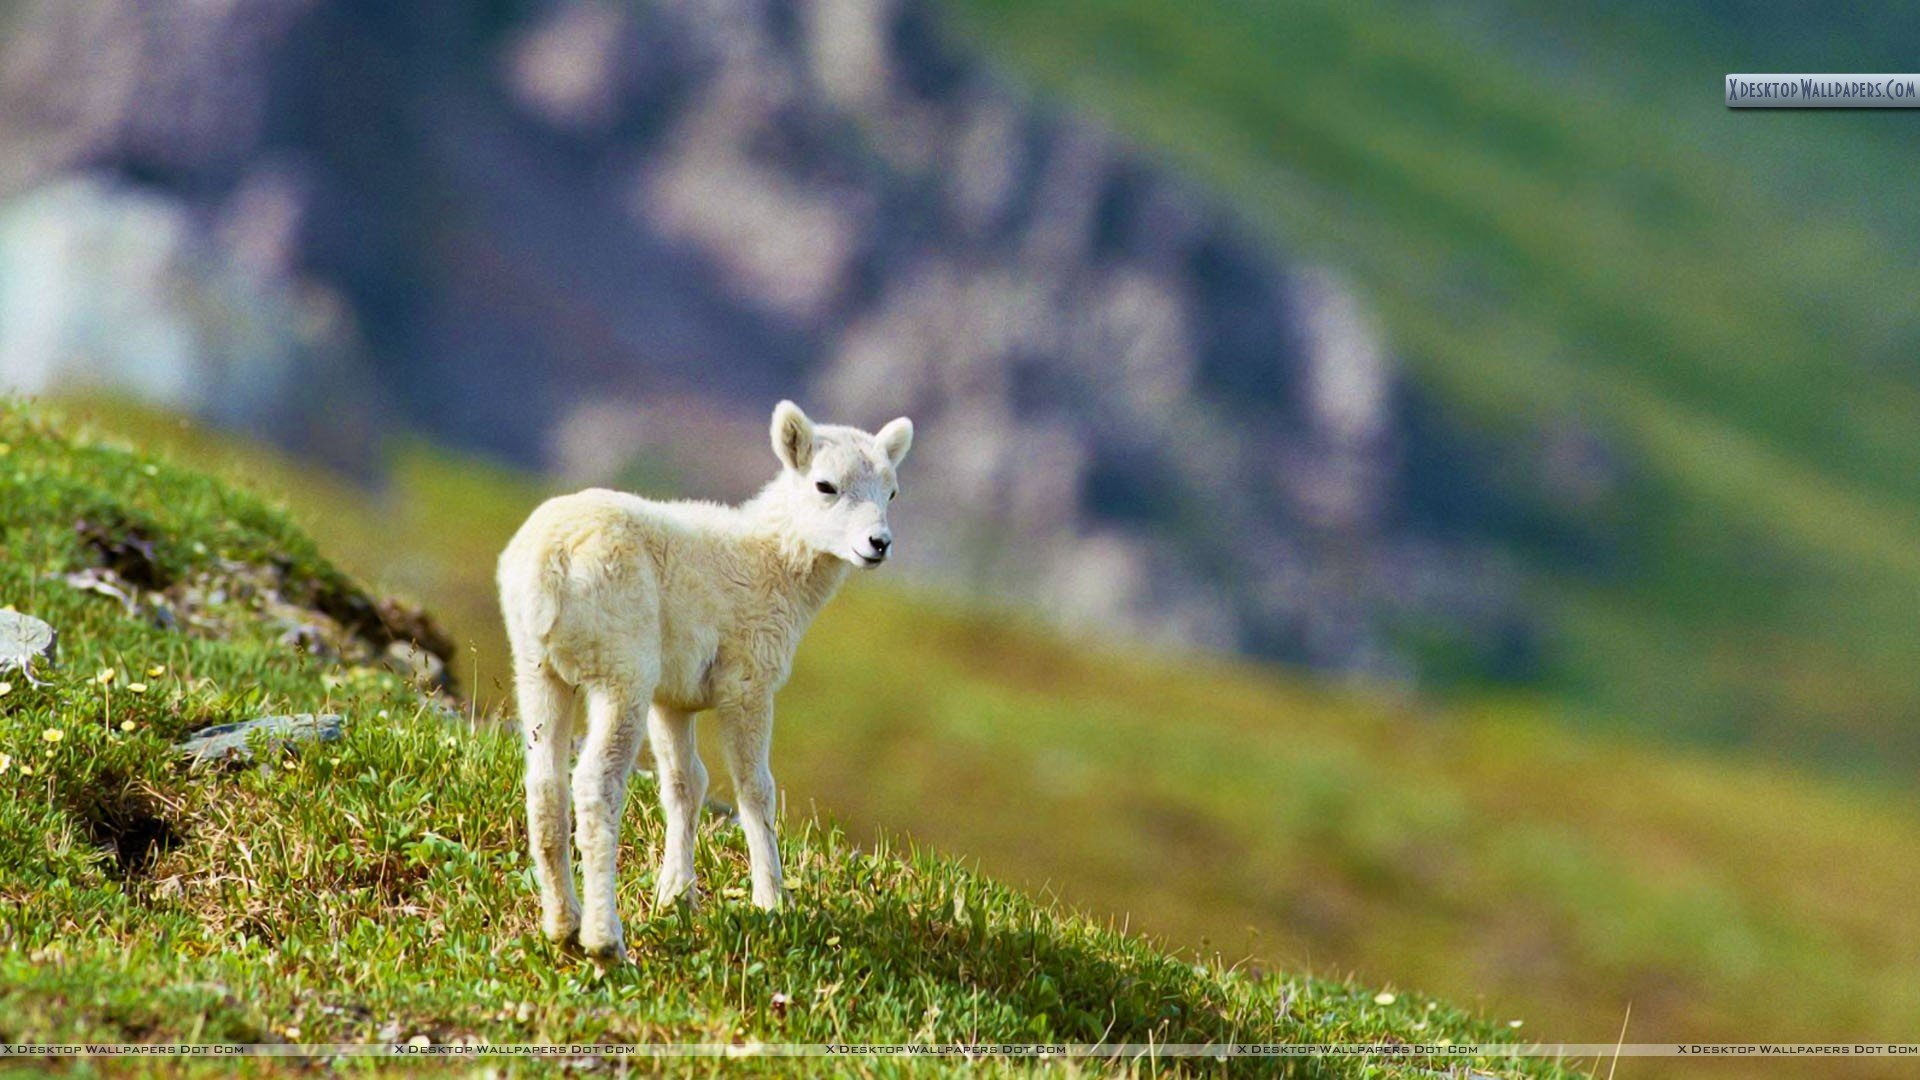 Sheep image Sheep HD wallpapers and backgrounds photos